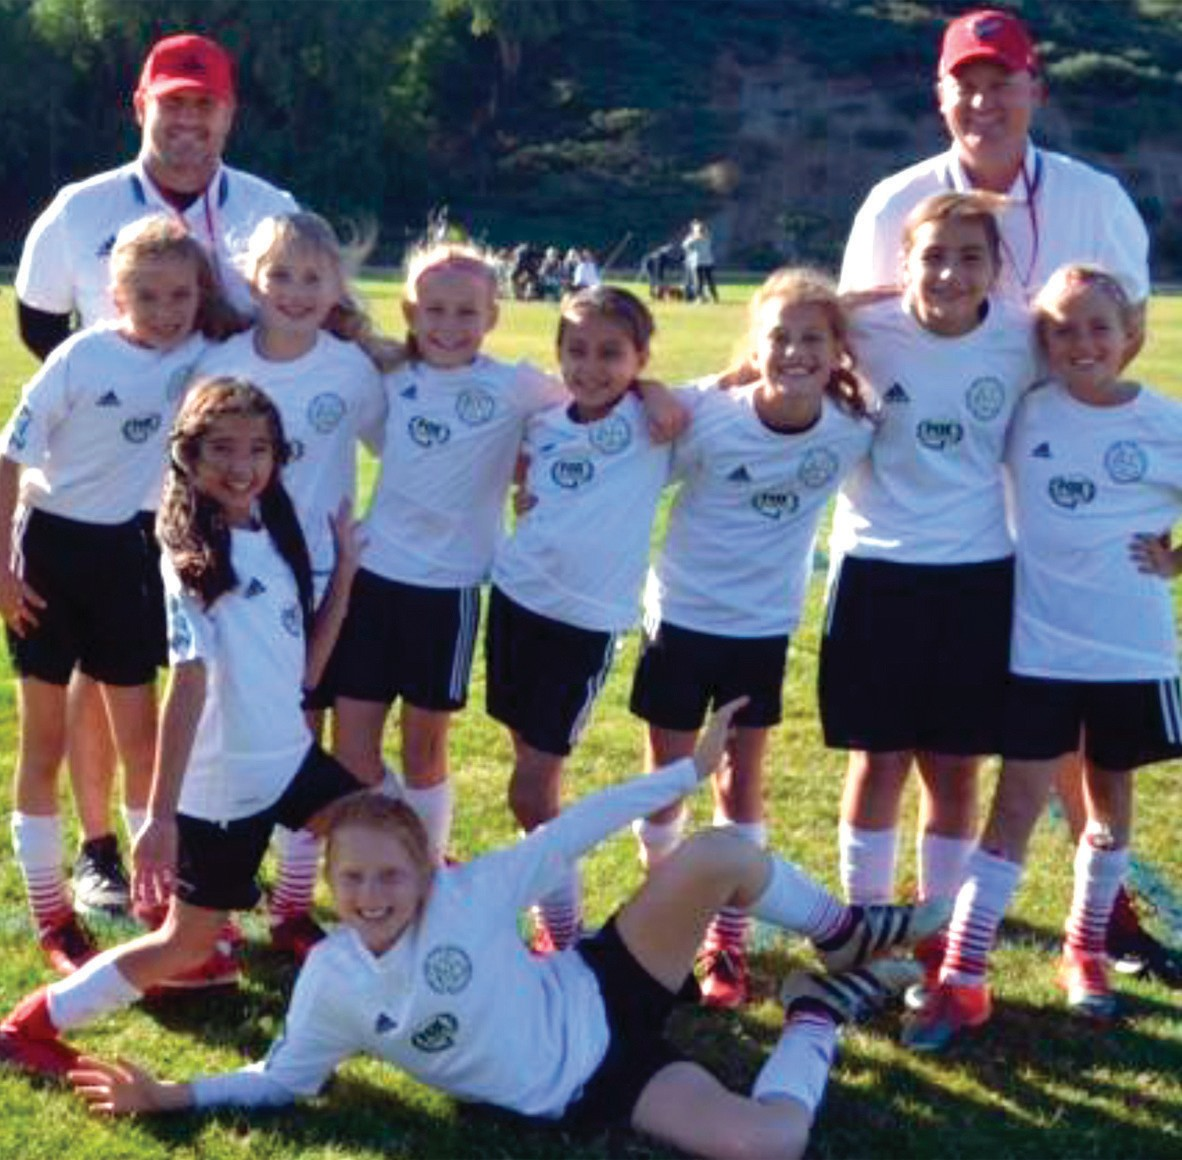 FLYING HIGH—The Red Hawks is the AYSO EXTRA 2008 girls'soccer league champion for the 2017 season. The girls won the league with a 10-1-1 record. They'll continue in January to the regional playoffs. Coaches are Scott Deck, back left, and Ryan Graves. Top row players and their school: Rian Bock (Sumac), Kelsey Graves (Oak Hills), Presley Deck (Oak Hills), Sienna Bradley (Willow), Bella Harder (Oak Hills), Sarah Manley (Red Oak), Makena Morgan (Westlake Elementary). Kneeling in front is Taylor Bessey (Oak Hills). On the ground is Audrey Simic (Westlake Elementary).